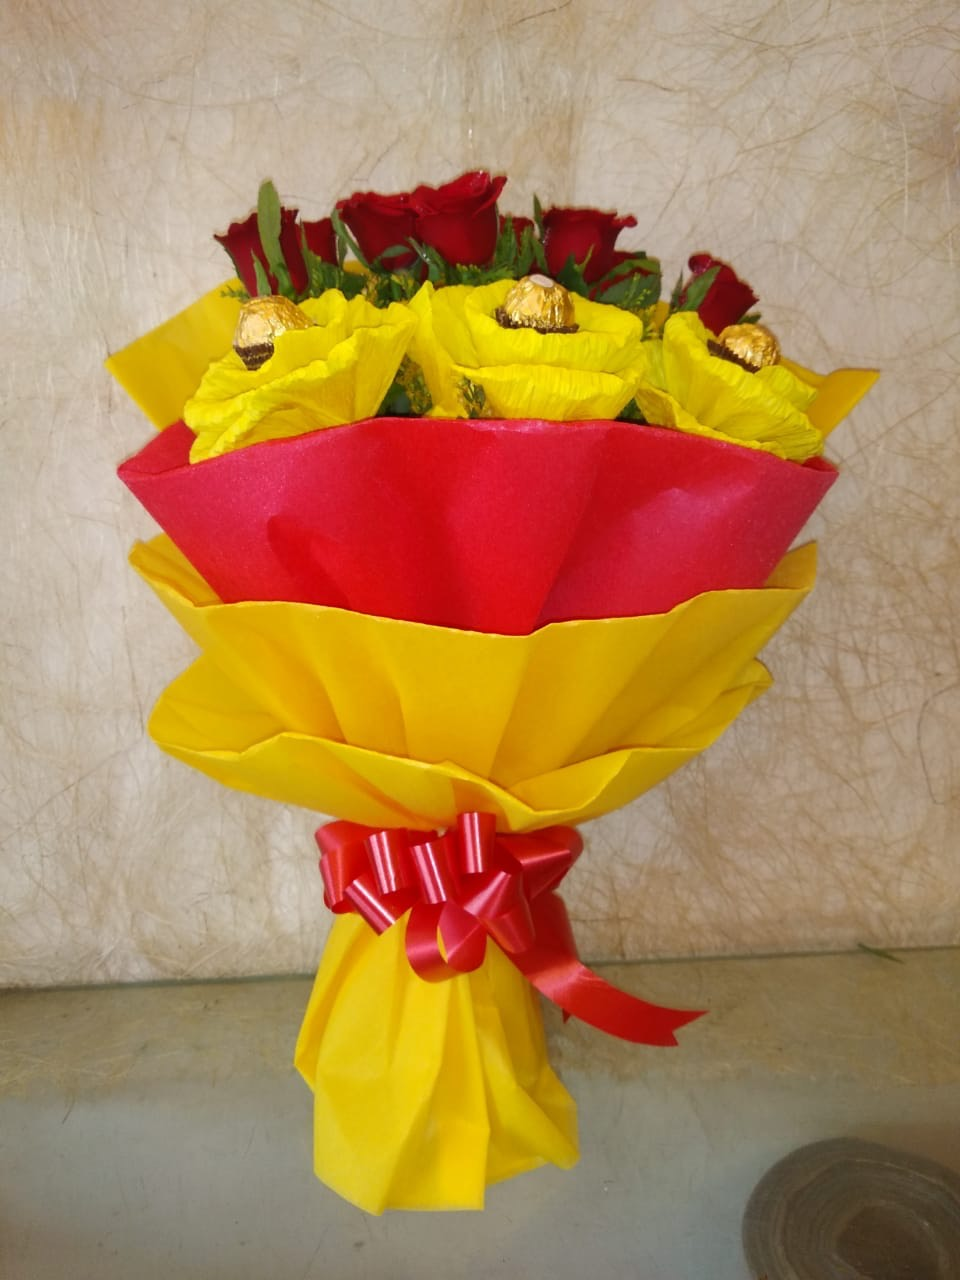 send flower Vikas puri DelhiRed Roses Ferrero Rocher Bunch